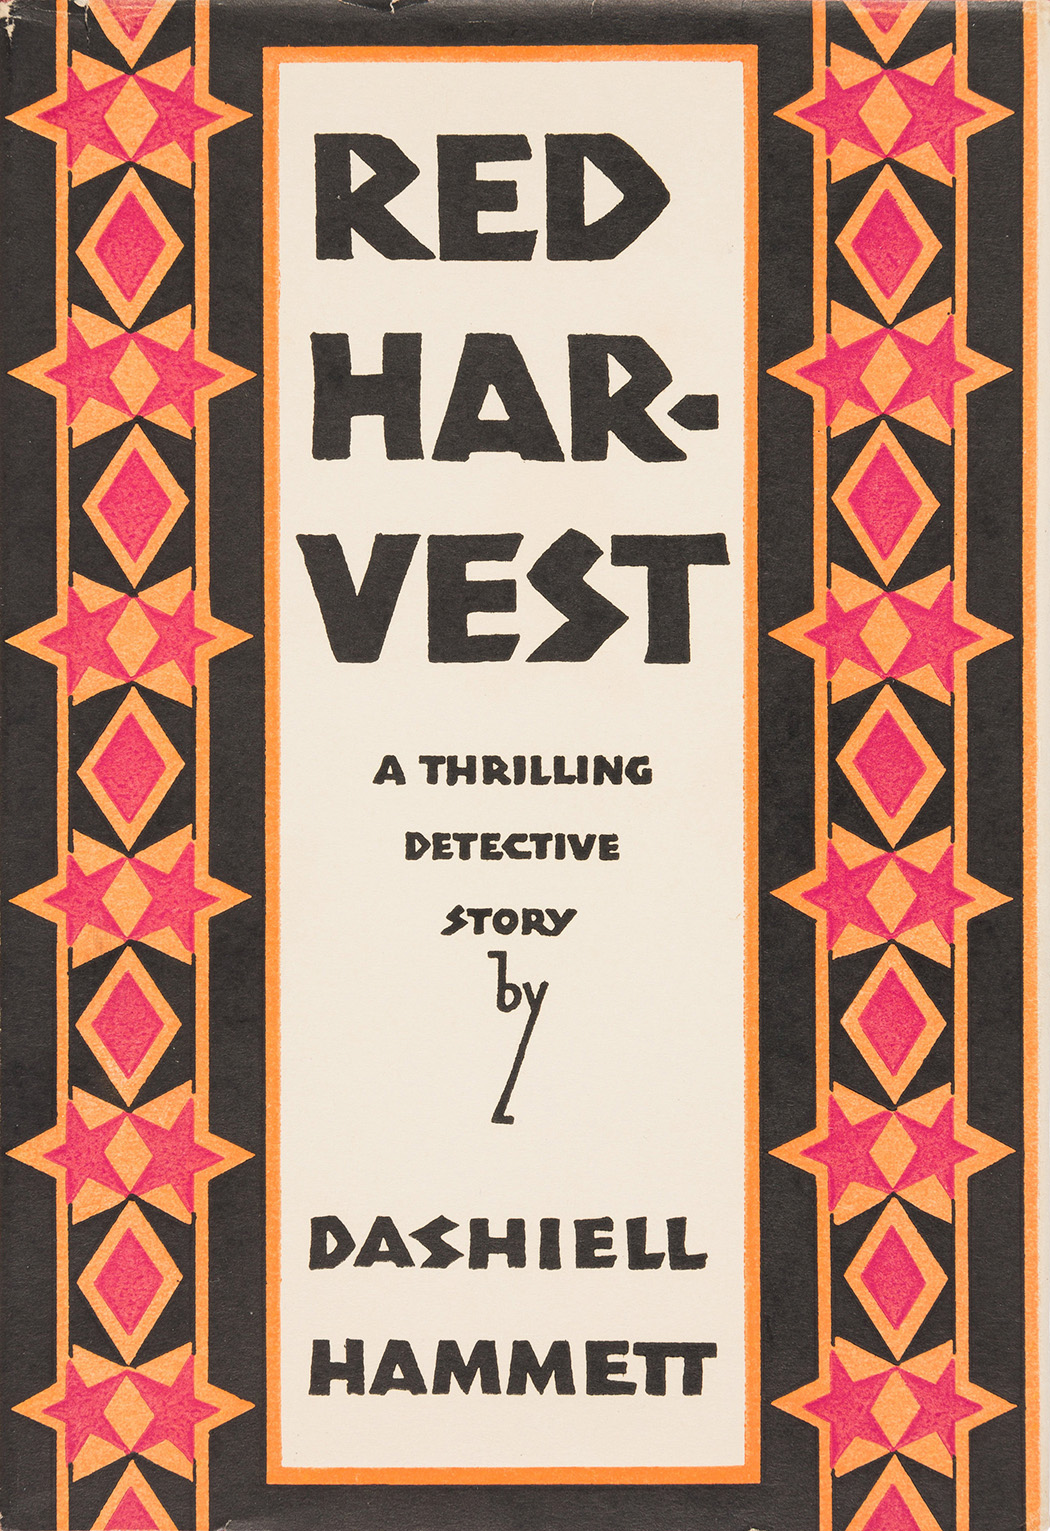 First-edition cover of Dashiell Hammett's first novel, Red Harvest, 1929